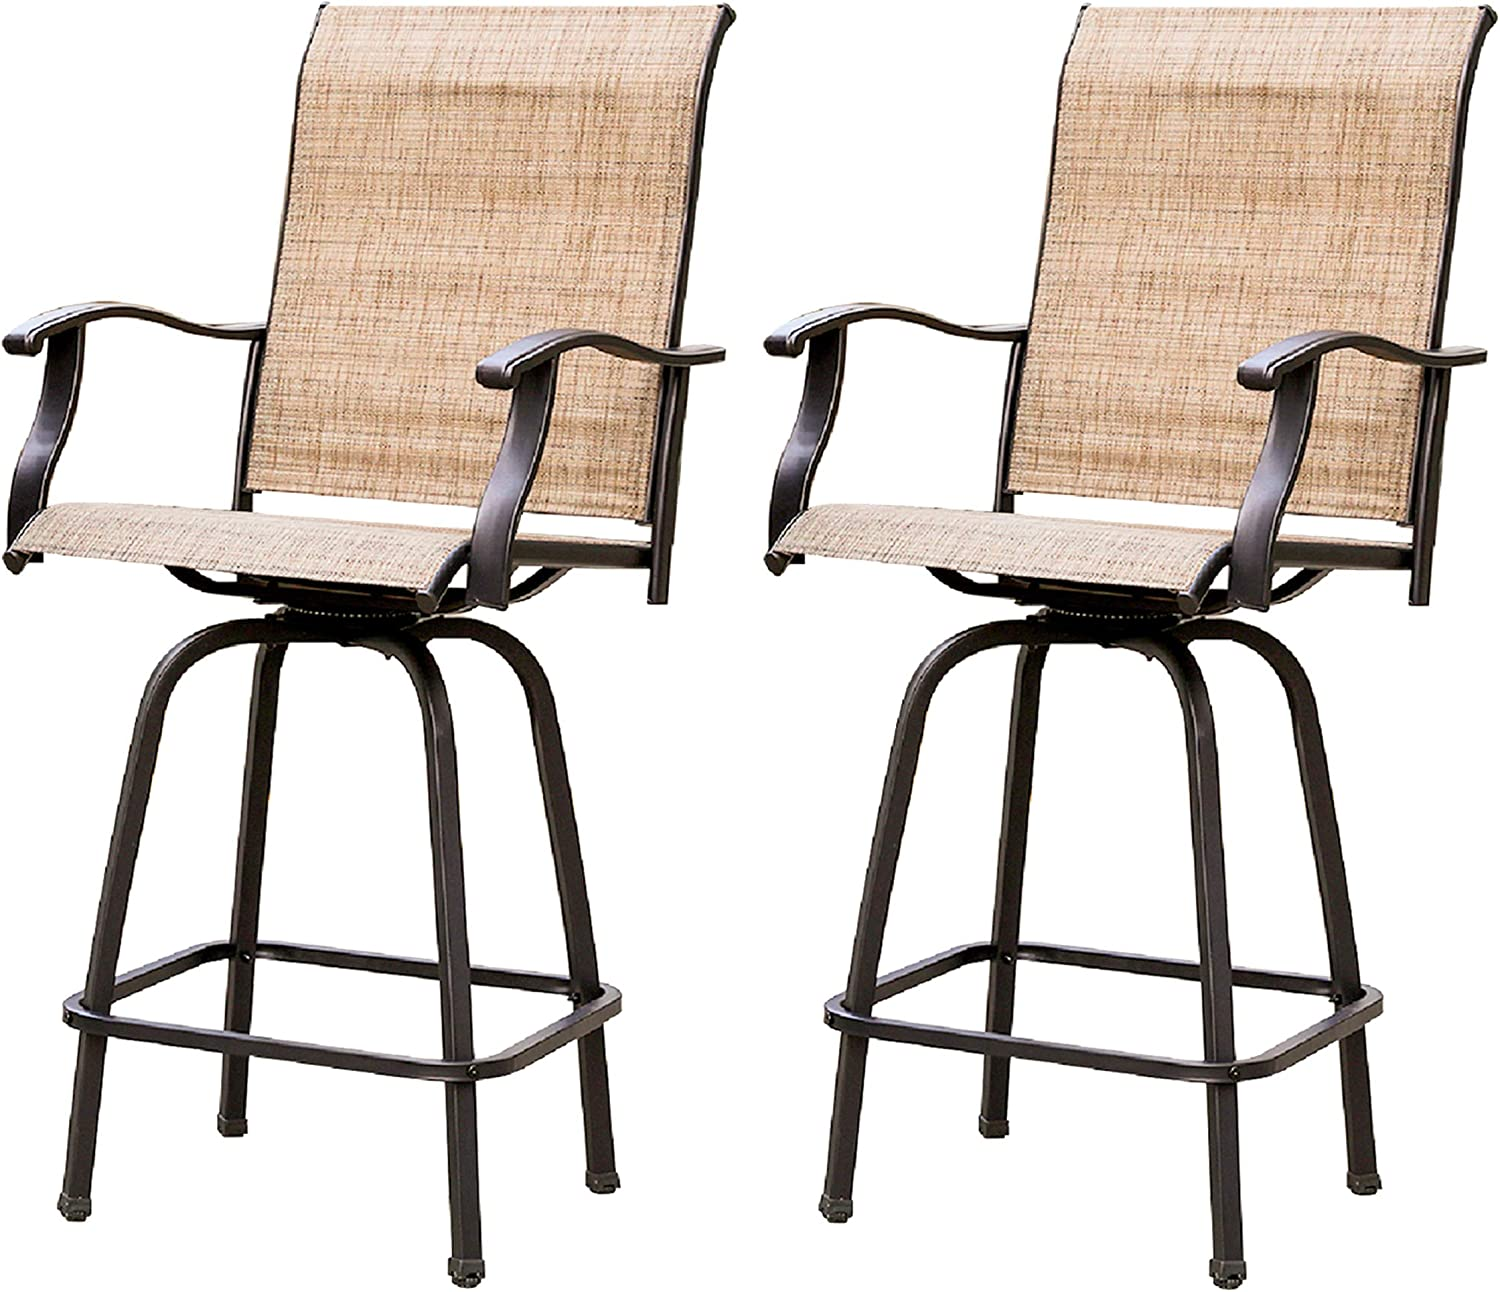 LOKATSE HOME 2 Piece Swivel Bar Stools Outdoor High Patio Chairs Furniture with All Weather Metal Frame: Garden & Outdoor